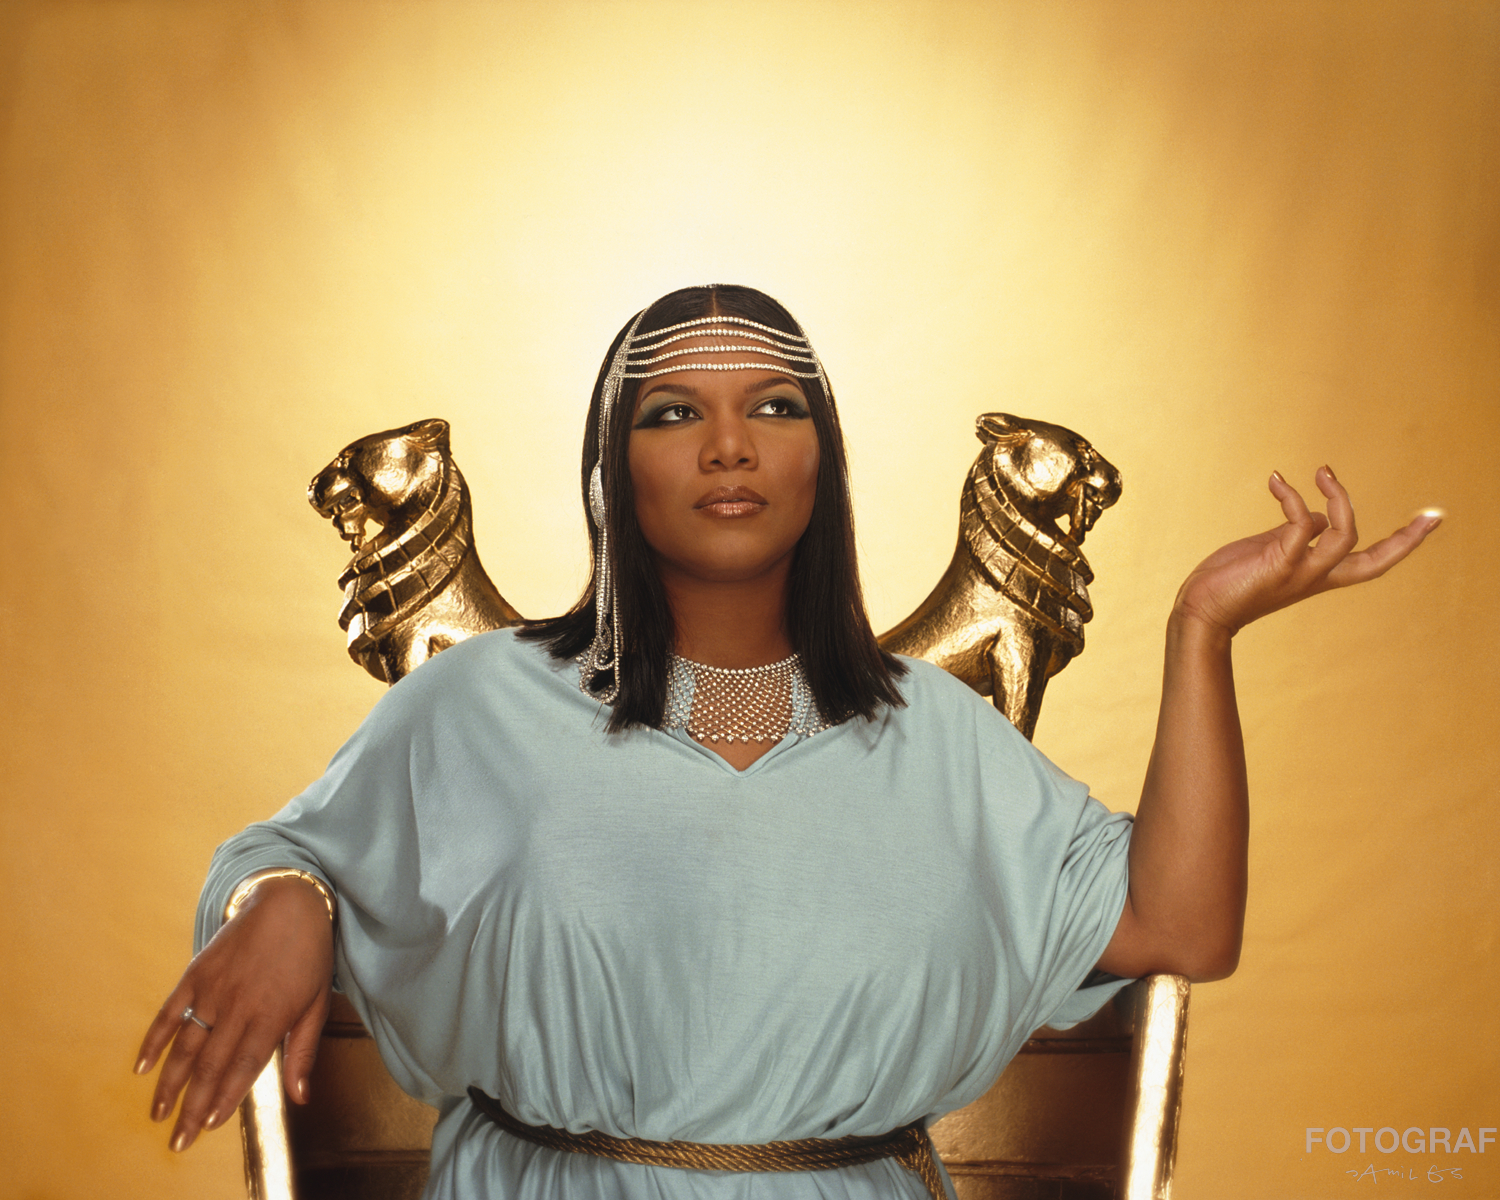 QUEEN LATIFAH